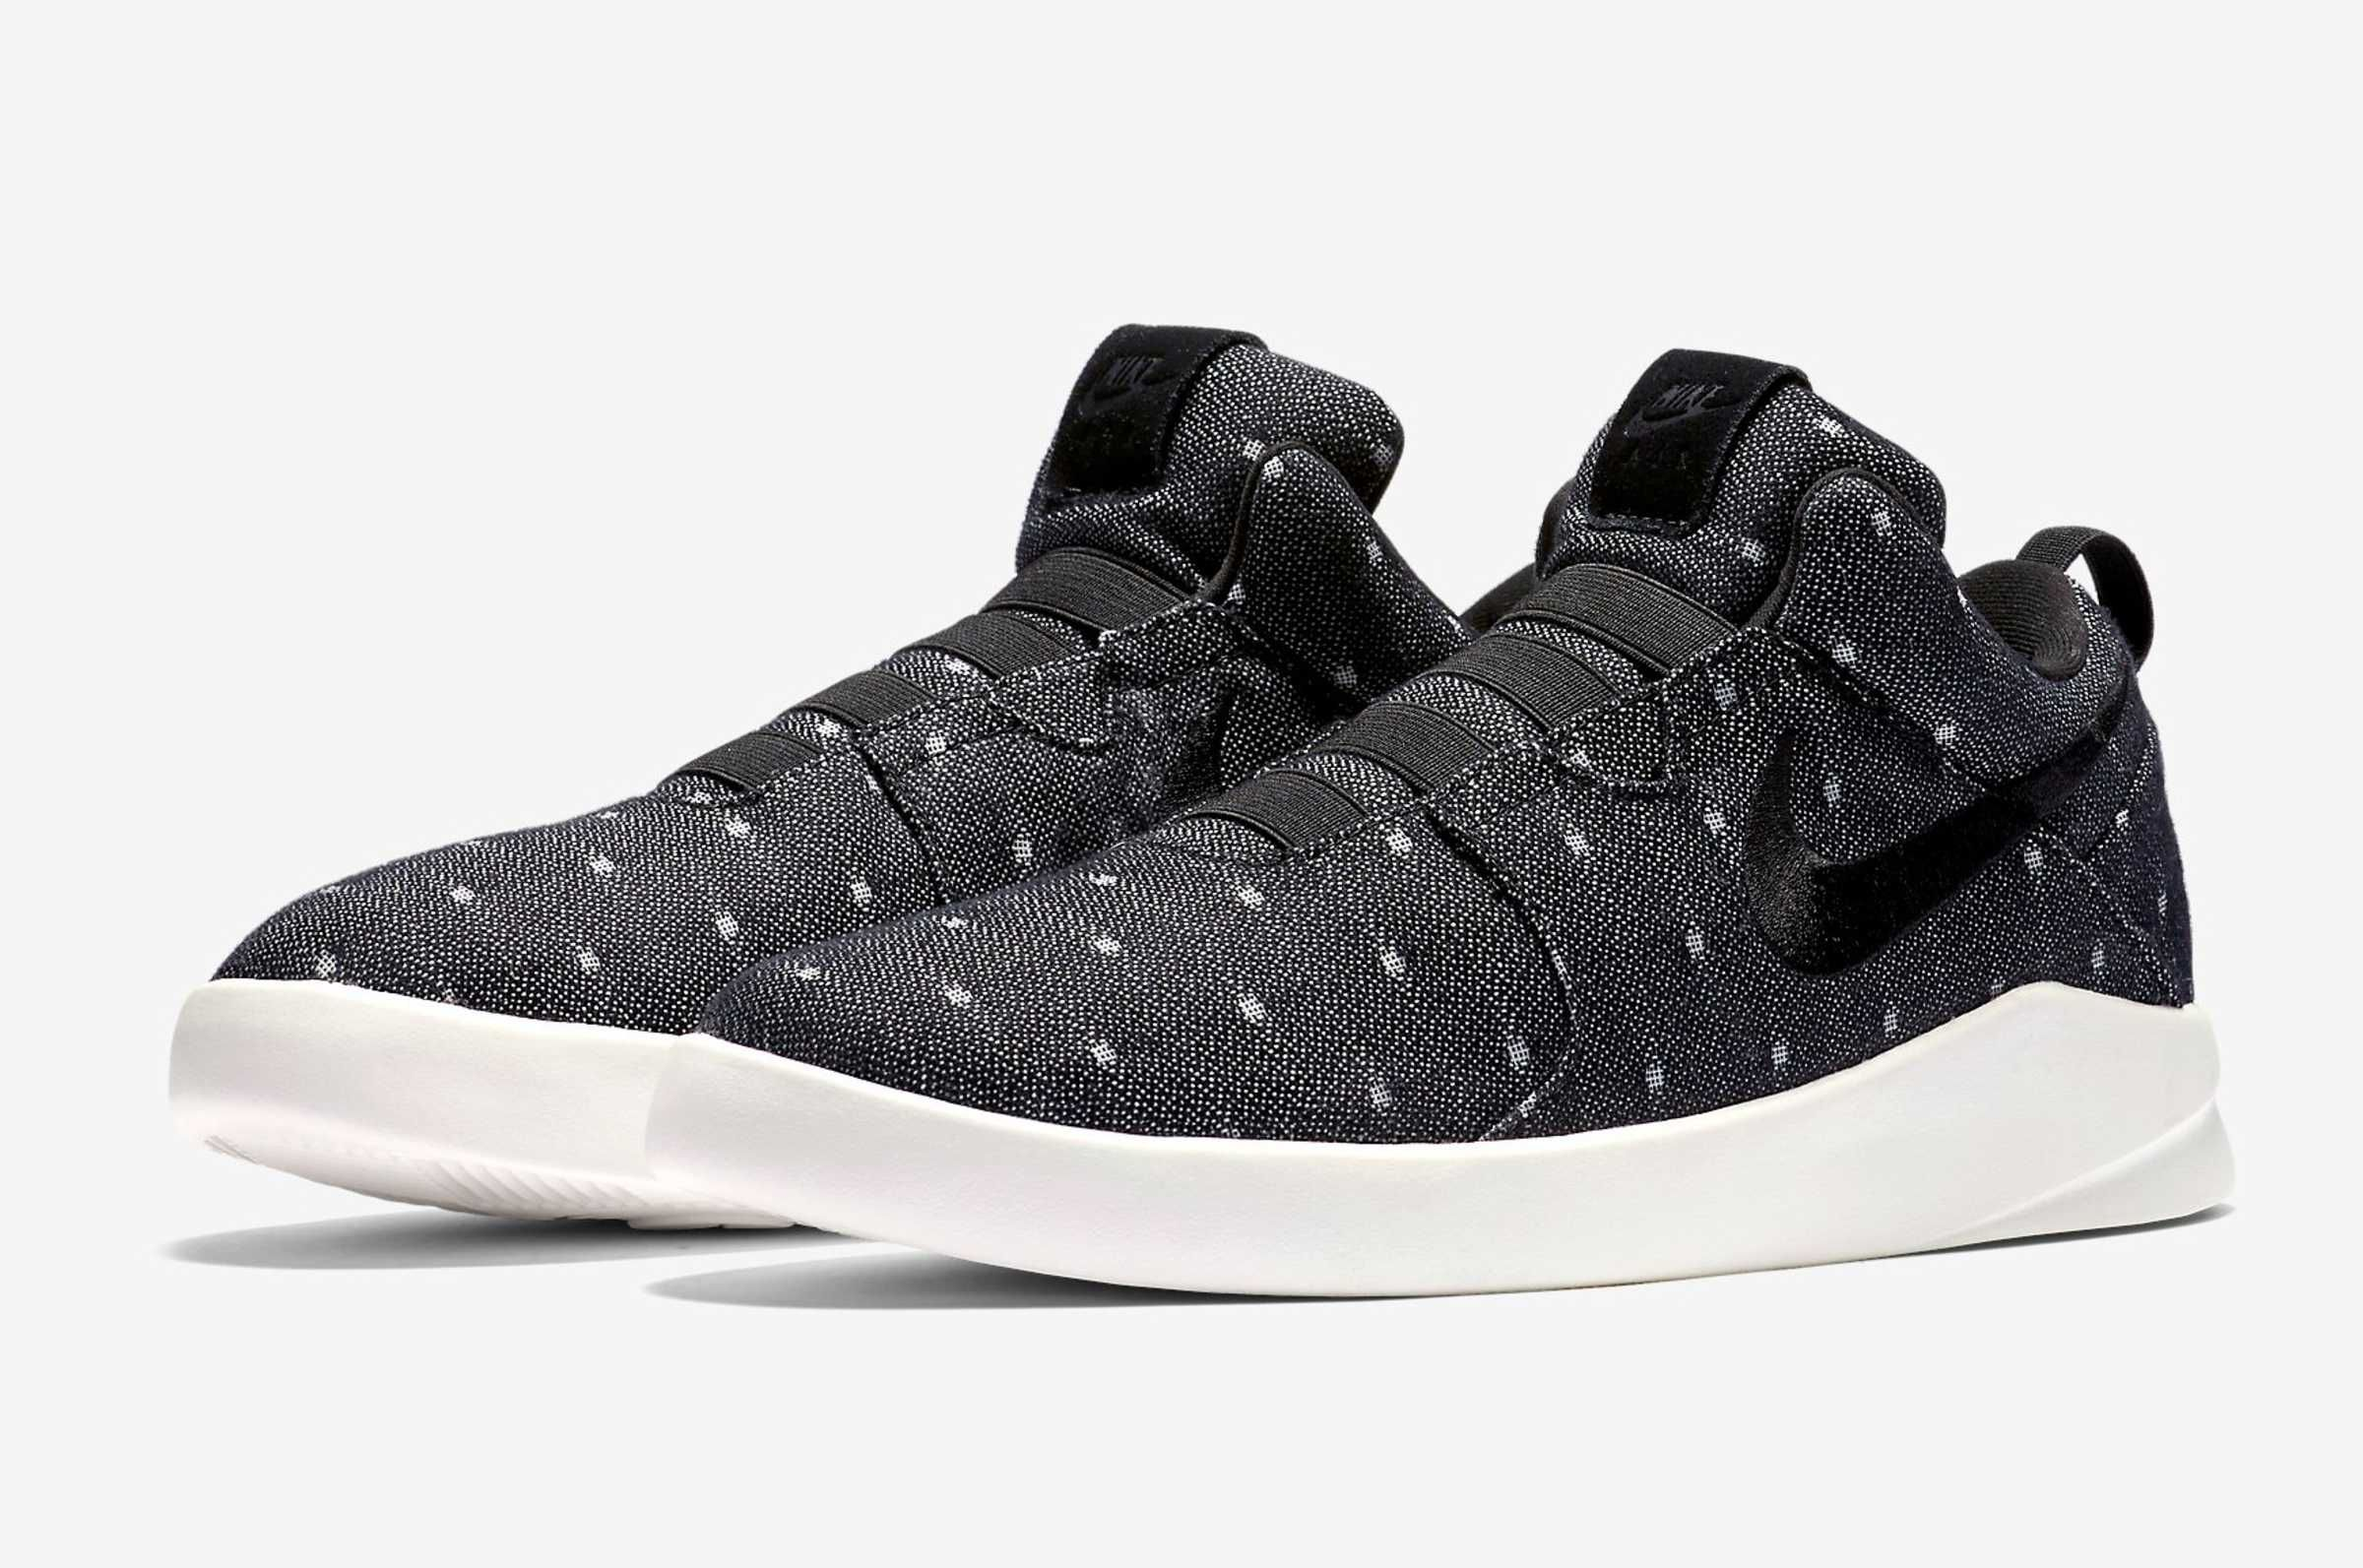 bbc1dfb9113f The Nike Air Shibusa Combines a Minimalist Design With Basketball Heritage.  A breathable mesh upper